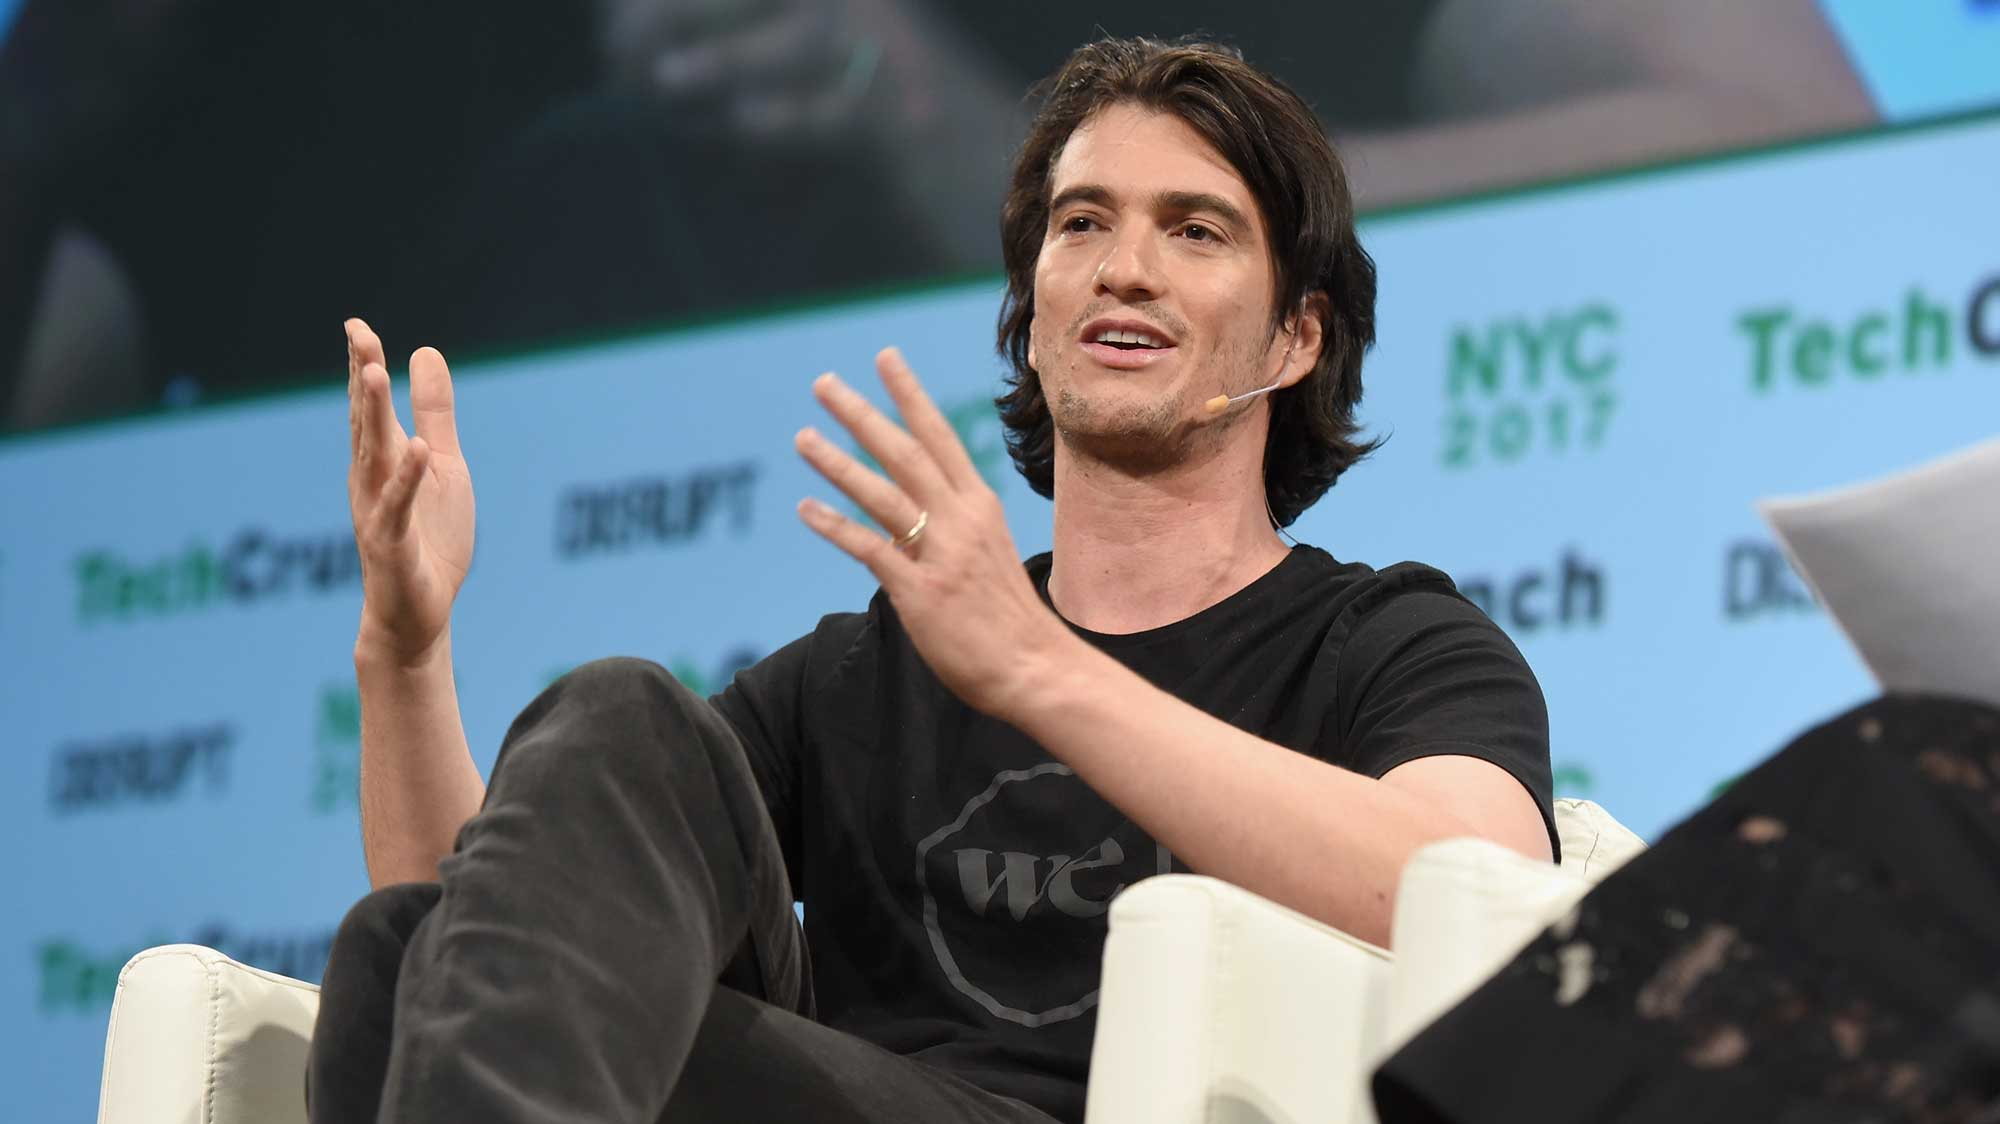 The strangest and most alarming things in WeWork's IPO filing